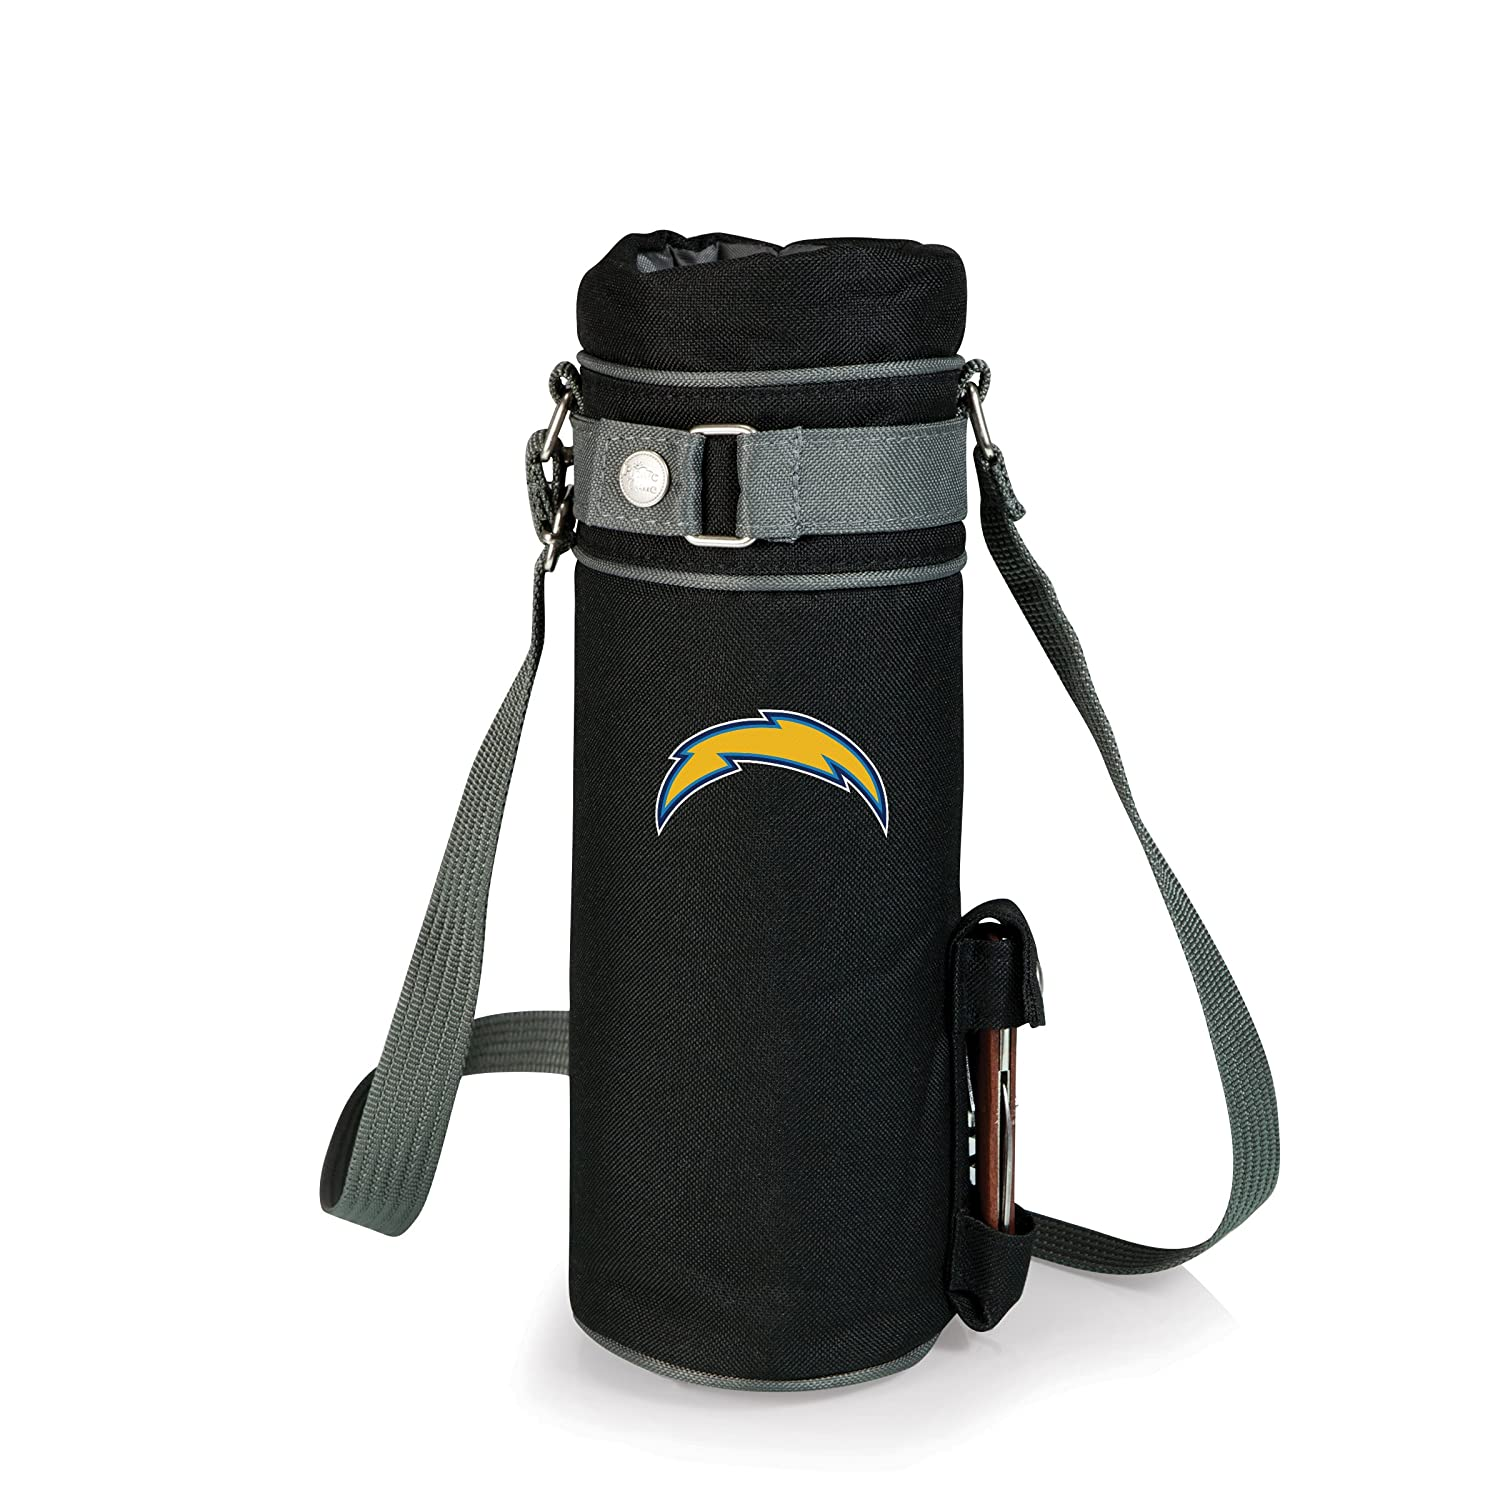 NFL Los Angeles Chargers InsulatedシングルボトルWine Tote withコルクスクリュー、ブラック   B0713MTMVV